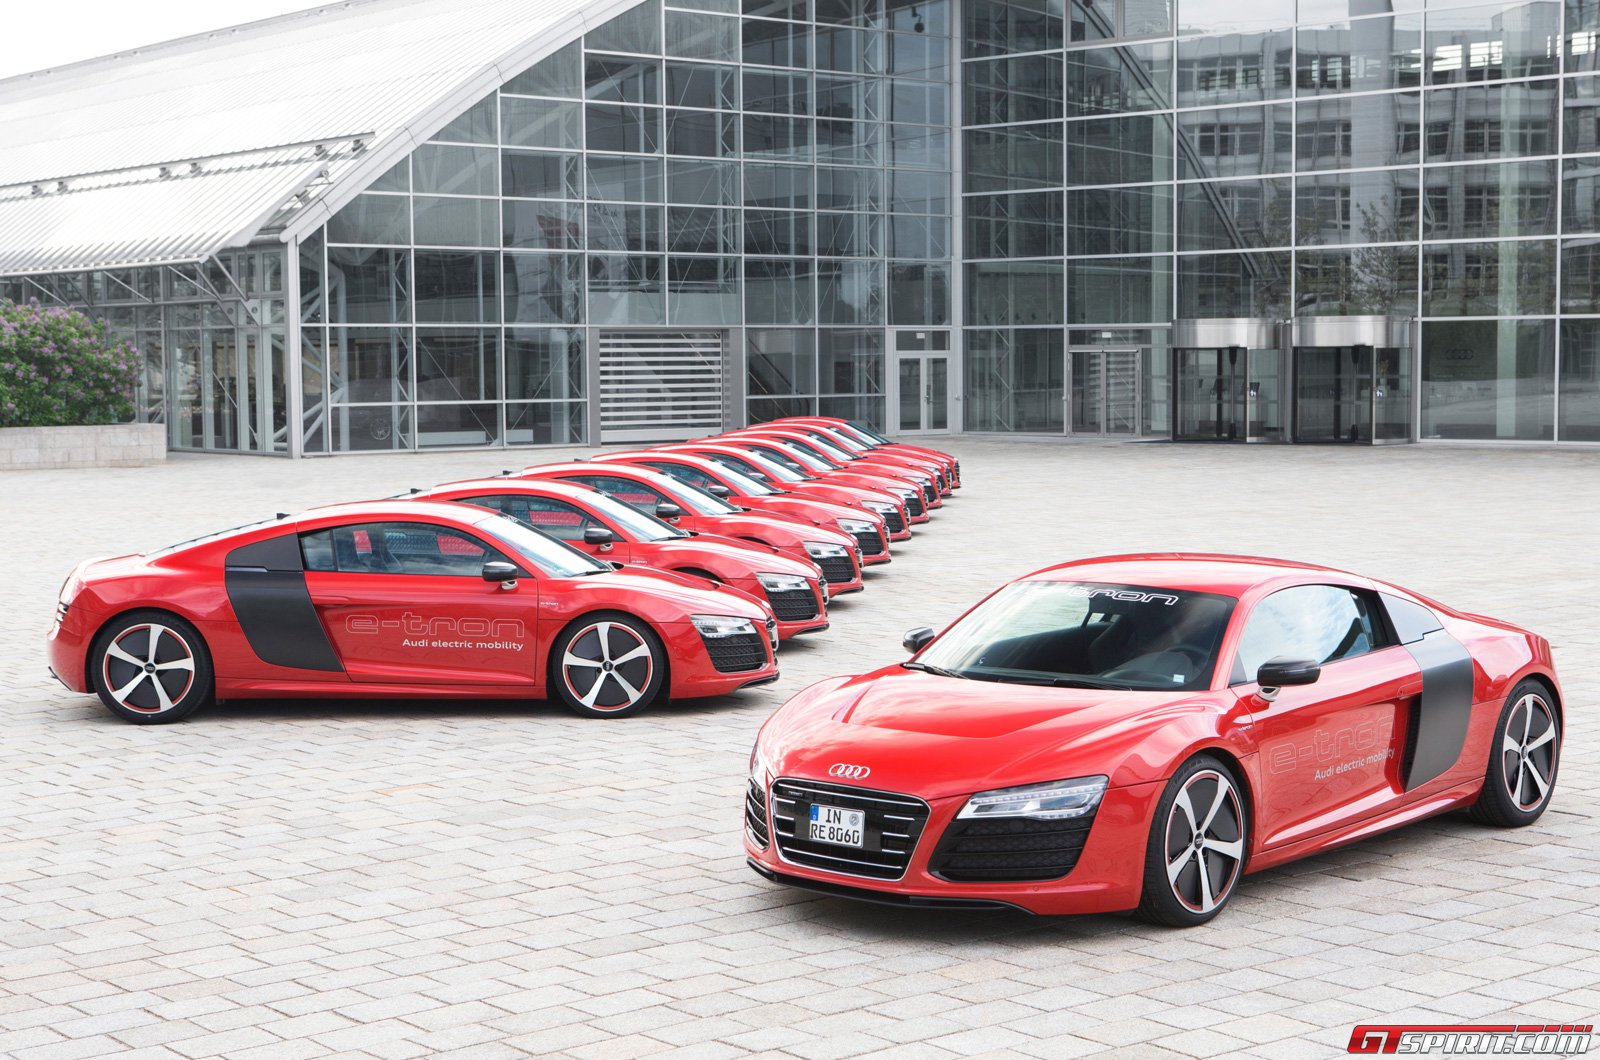 Audi R8 E Tron Confirmed For Production With 450km Range